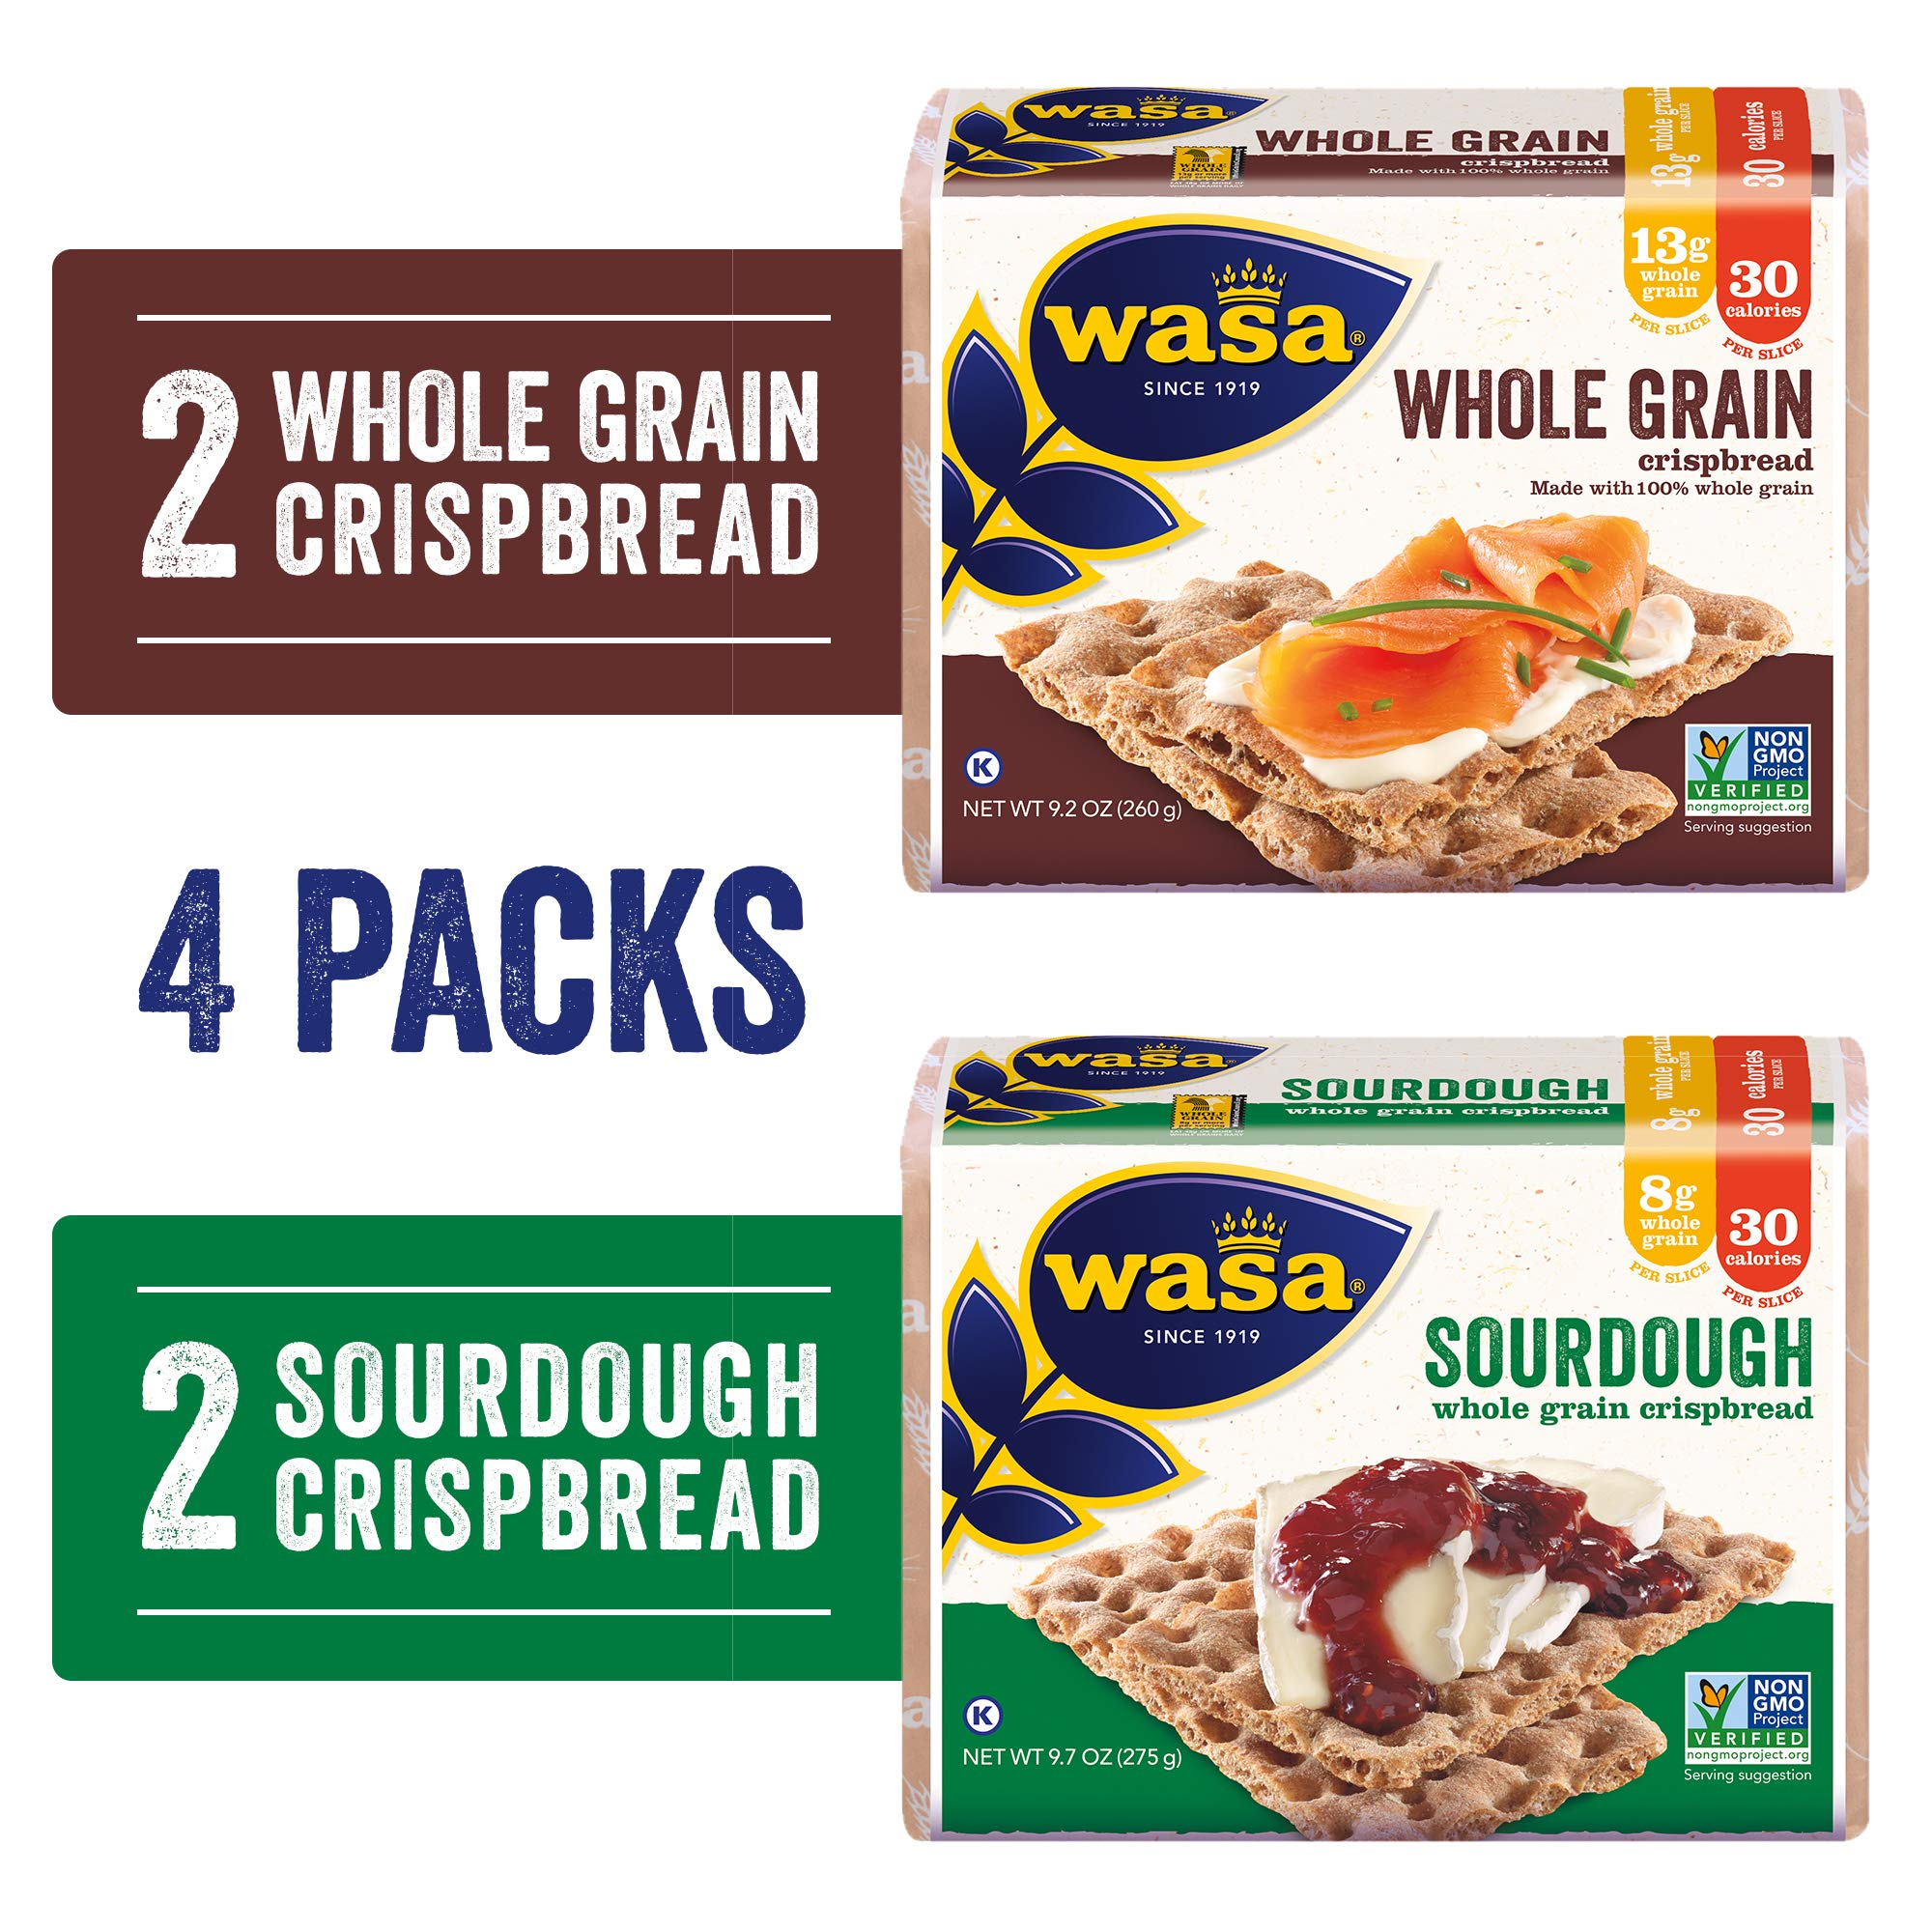 Wasa Swedish Crispbread Variety 4 Pack, Sourdough (Pack Of 2) & Whole Grain (Pack Of 2), All-Natural Crackers, Fat Free, No Saturated Fat, 0g of Trans Fat, No Cholesterol, Kosher Certified, 3 Lb by Wasa